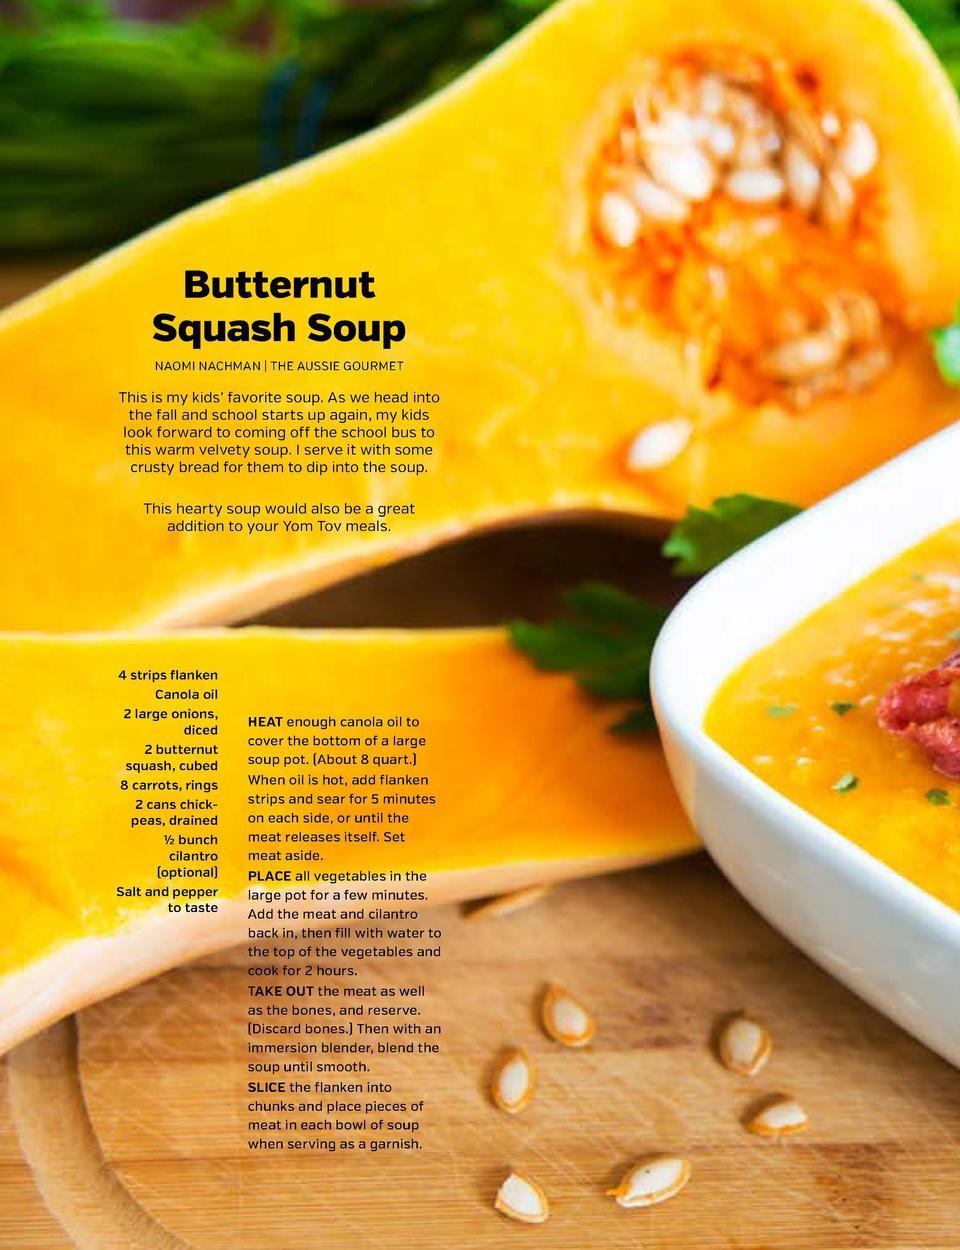 SHARPEN YOUR APPETITE  SHARPEN YOUR APPETITE  SOUP 1  SOUP 2  Butternut Squash Soup NAOMI NACHMAN   THE AUSSIE GOURMET  Th...